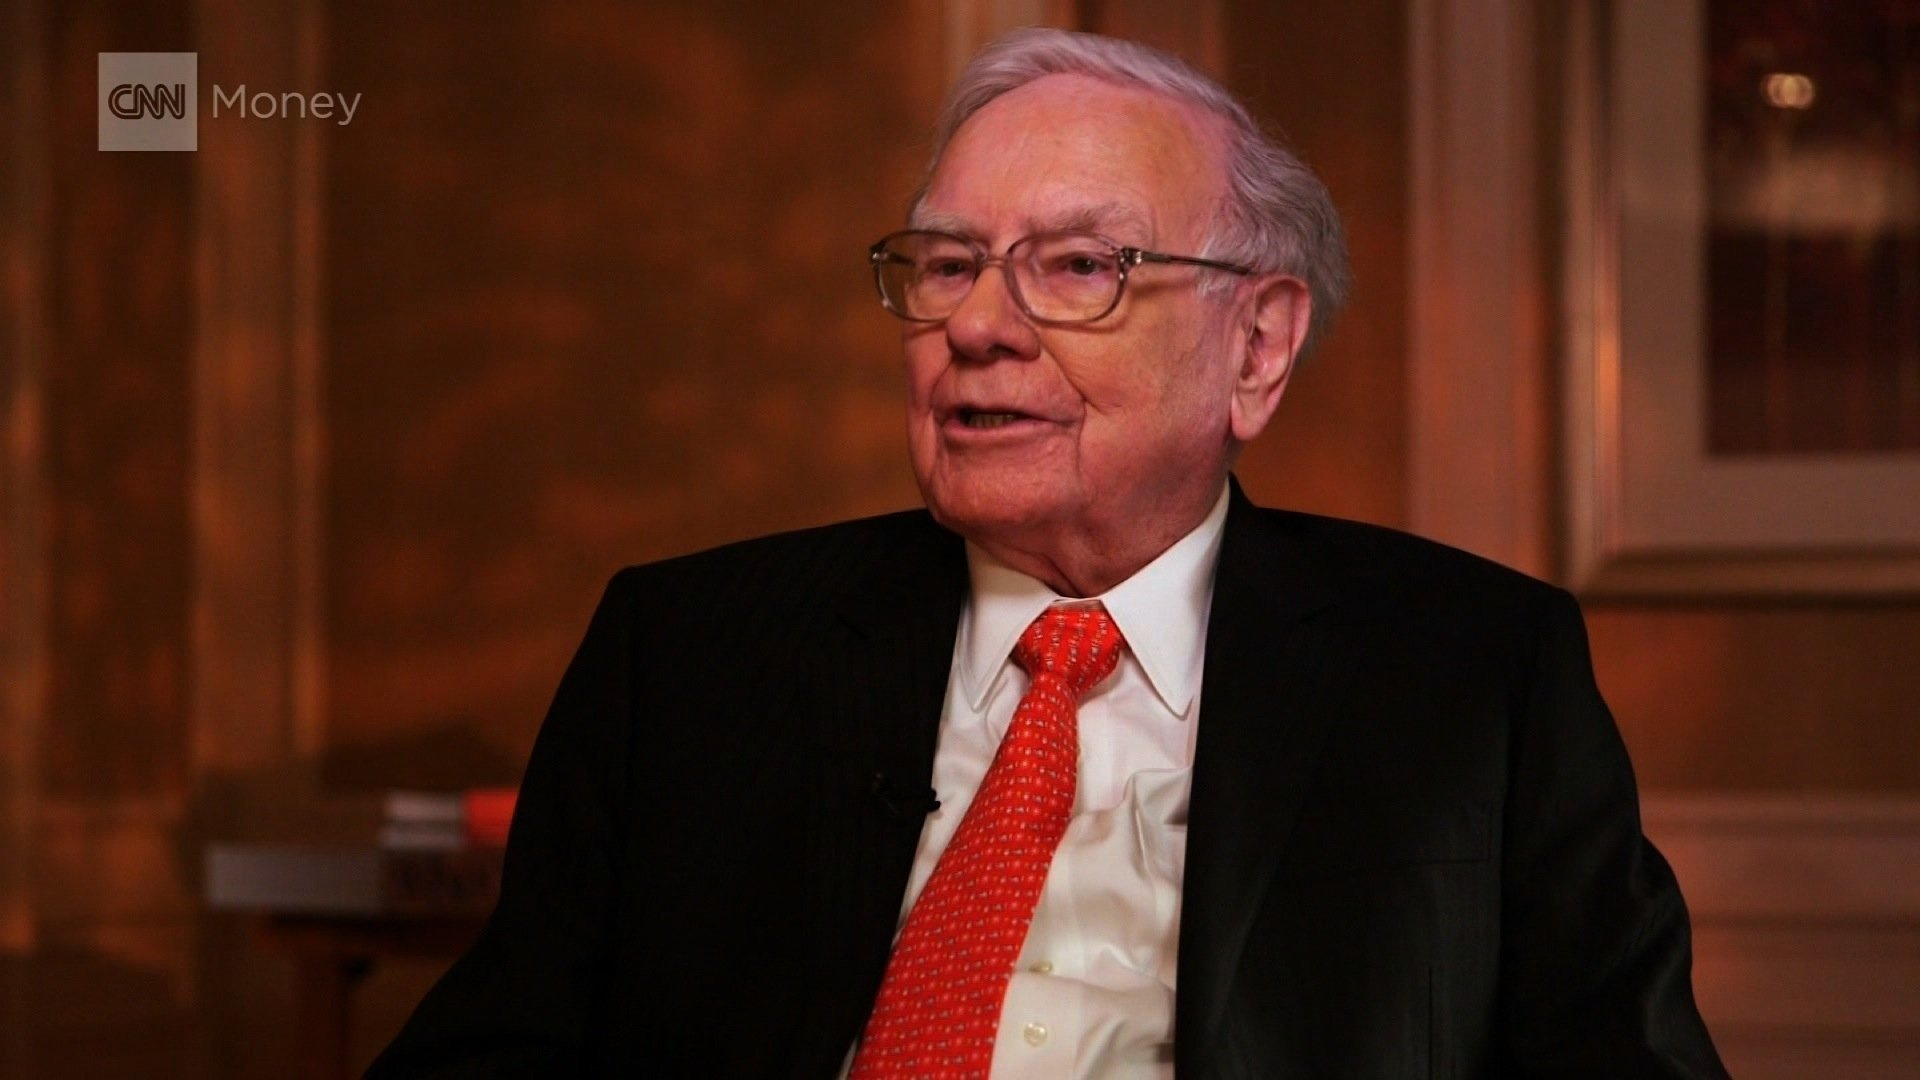 Warren Buffett's Berkshire Hathaway has $116 billion in cash and the Oracle of Omaha told shareholders in his latest annual letter that he is itching to make